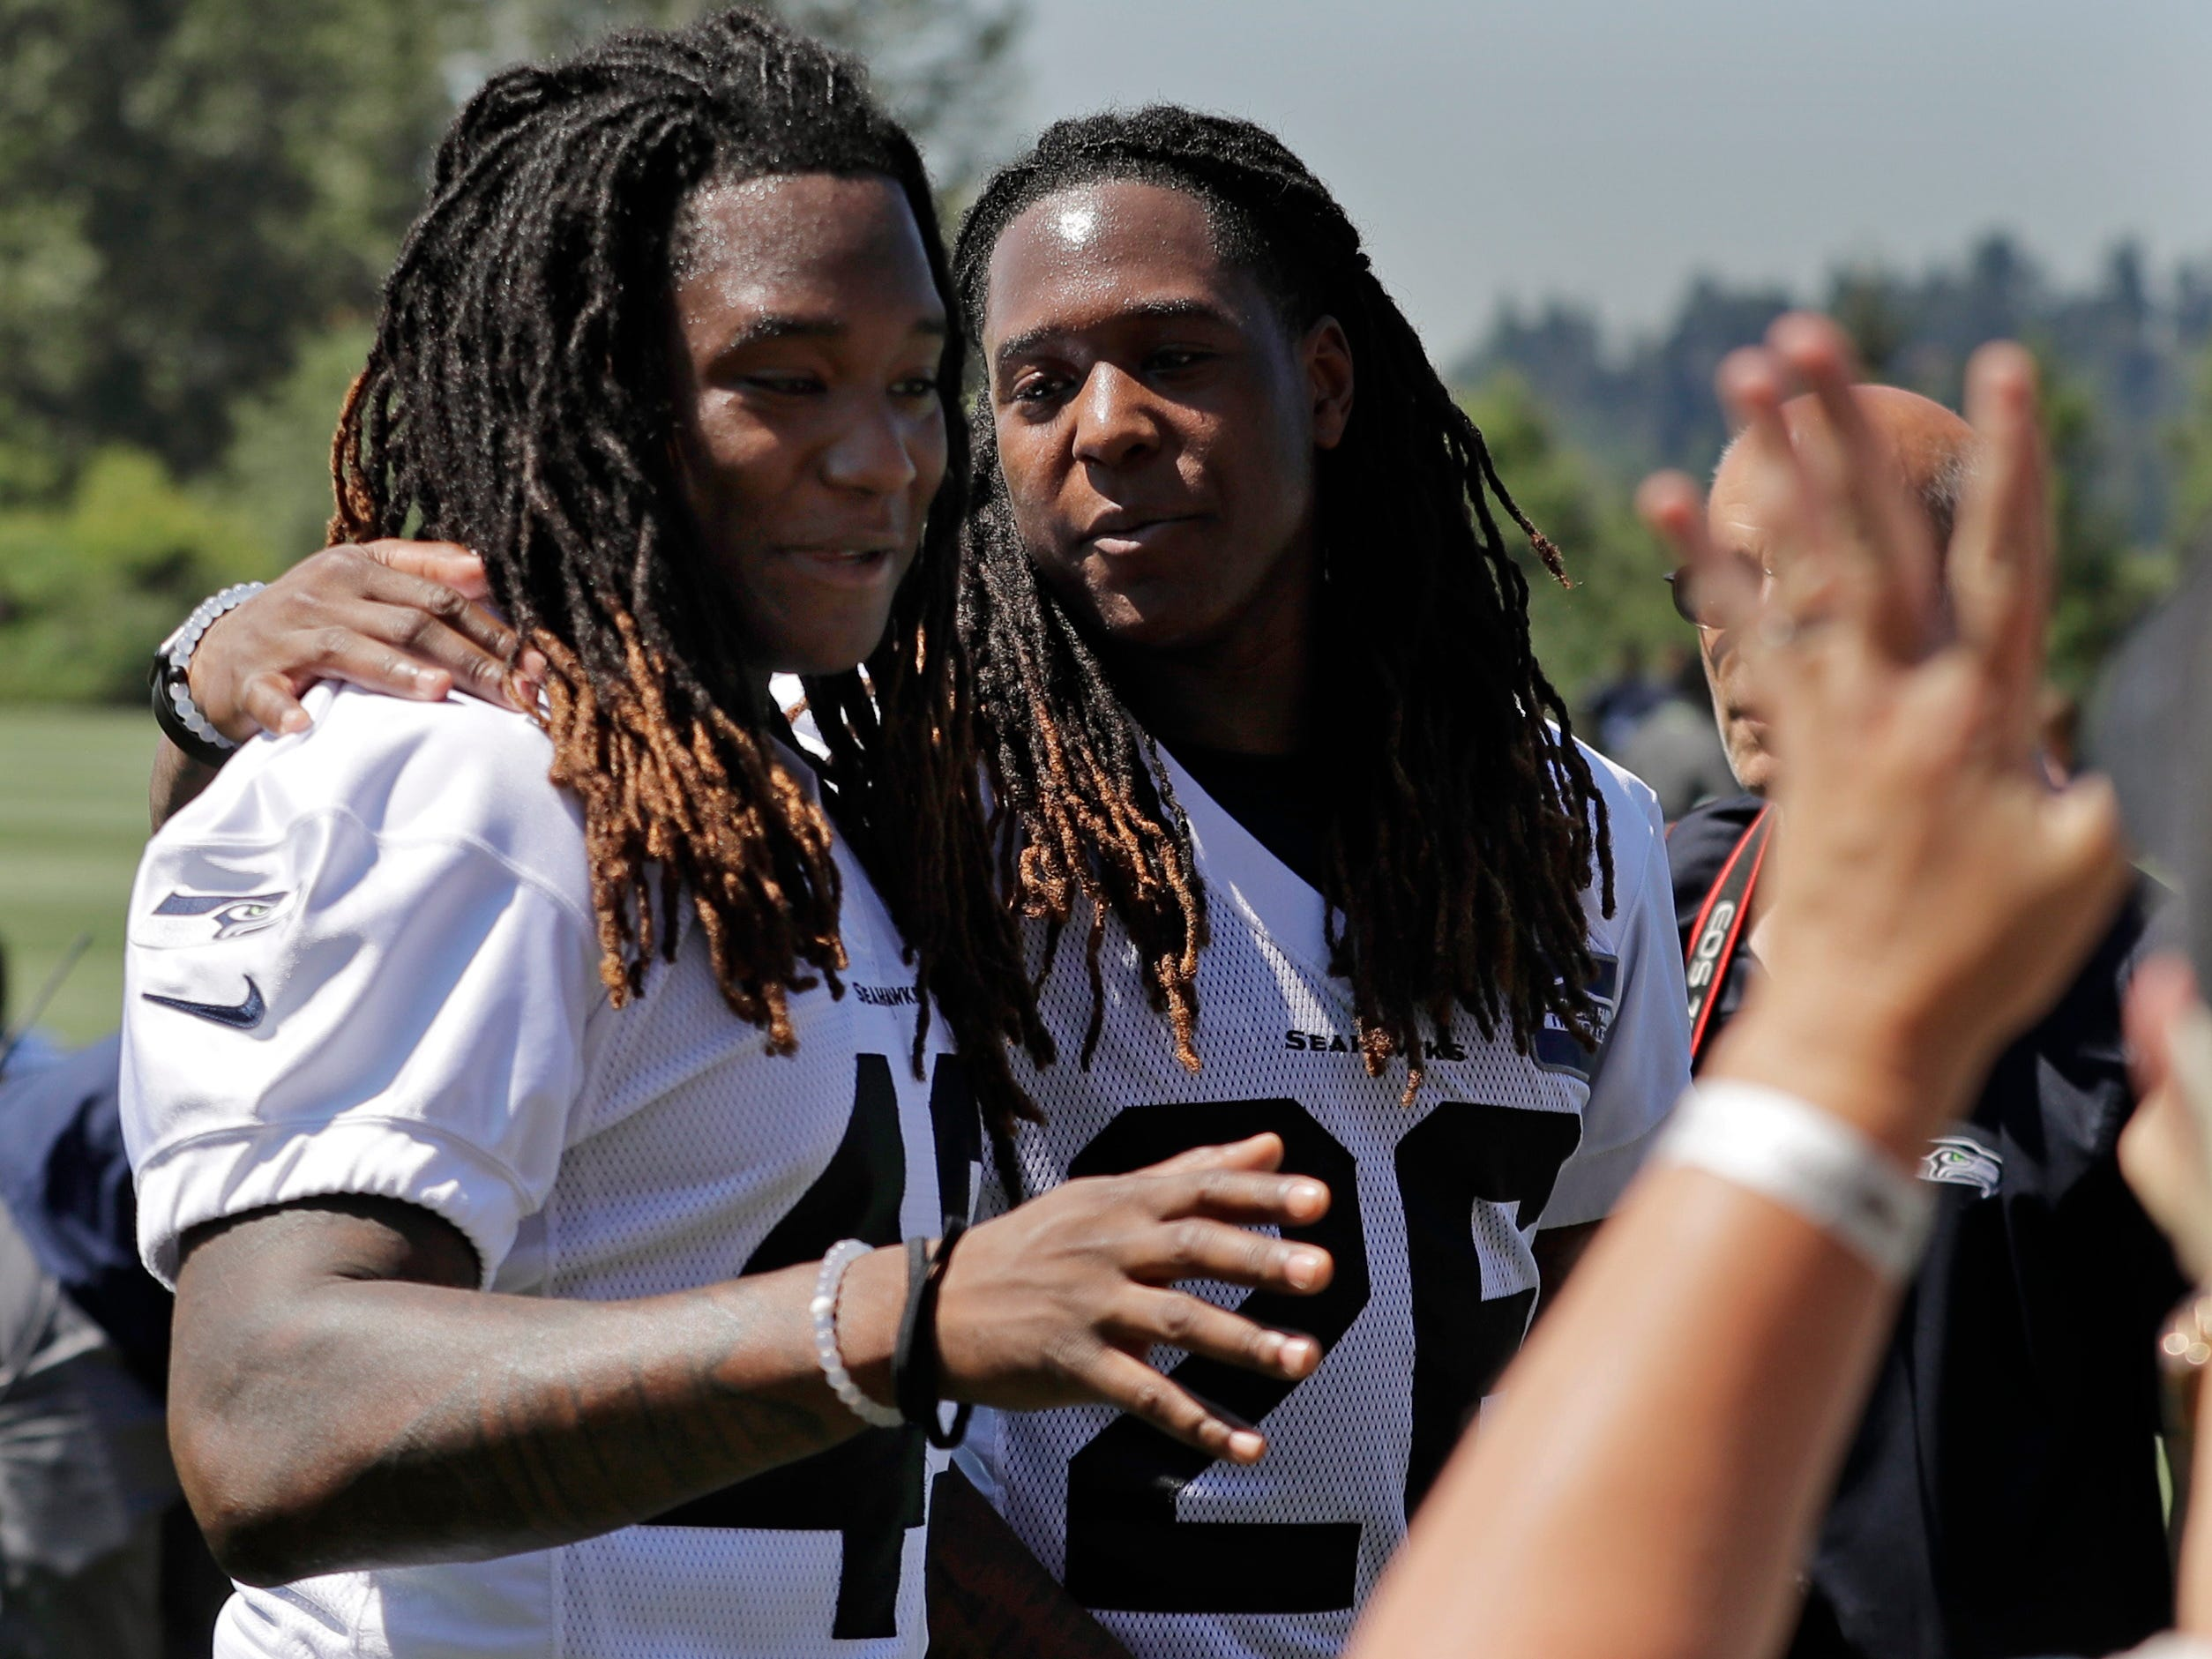 Seattle Seahawks' twin brothers, linebacker Shaquem Griffin, left, and cornerback Shaquill Griffin, greet fans after NFL football training camp, Thursday, July 26, 2018, in Renton, Wash. (AP Photo/Ted S. Warren)